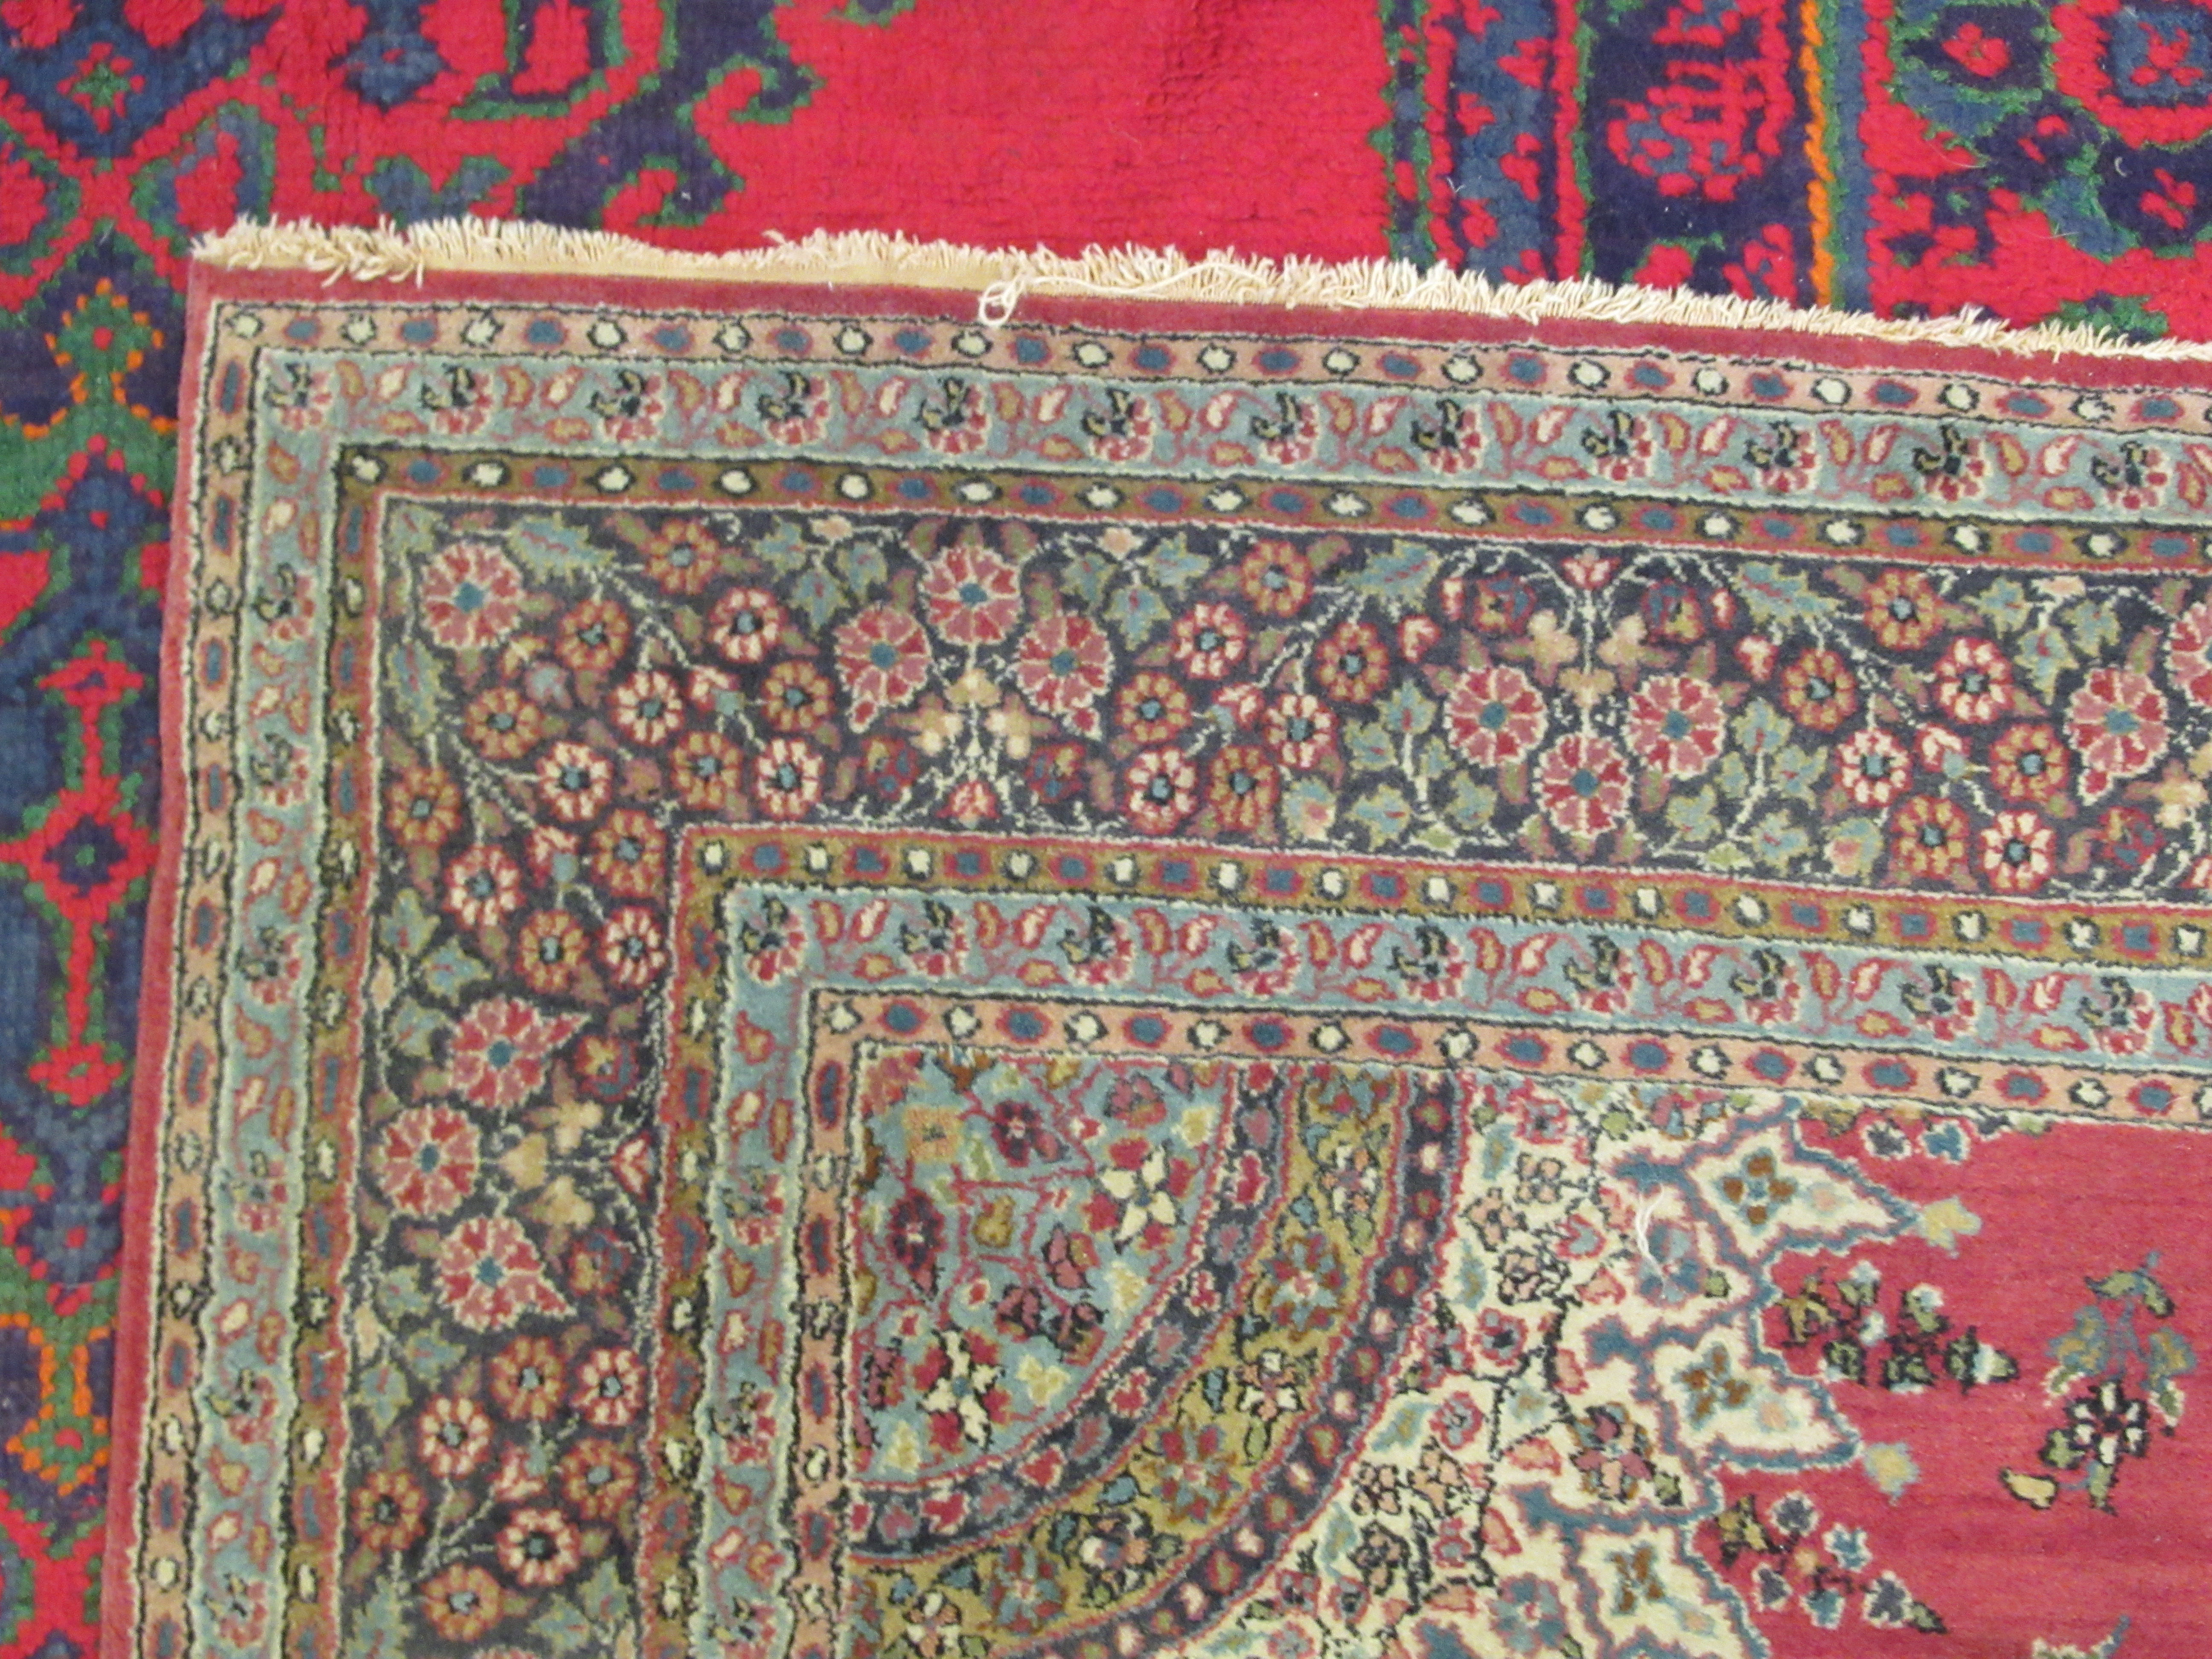 A Persian rug, decorated with a central starburst design medallion, bordered by floral designs, on a - Image 3 of 4